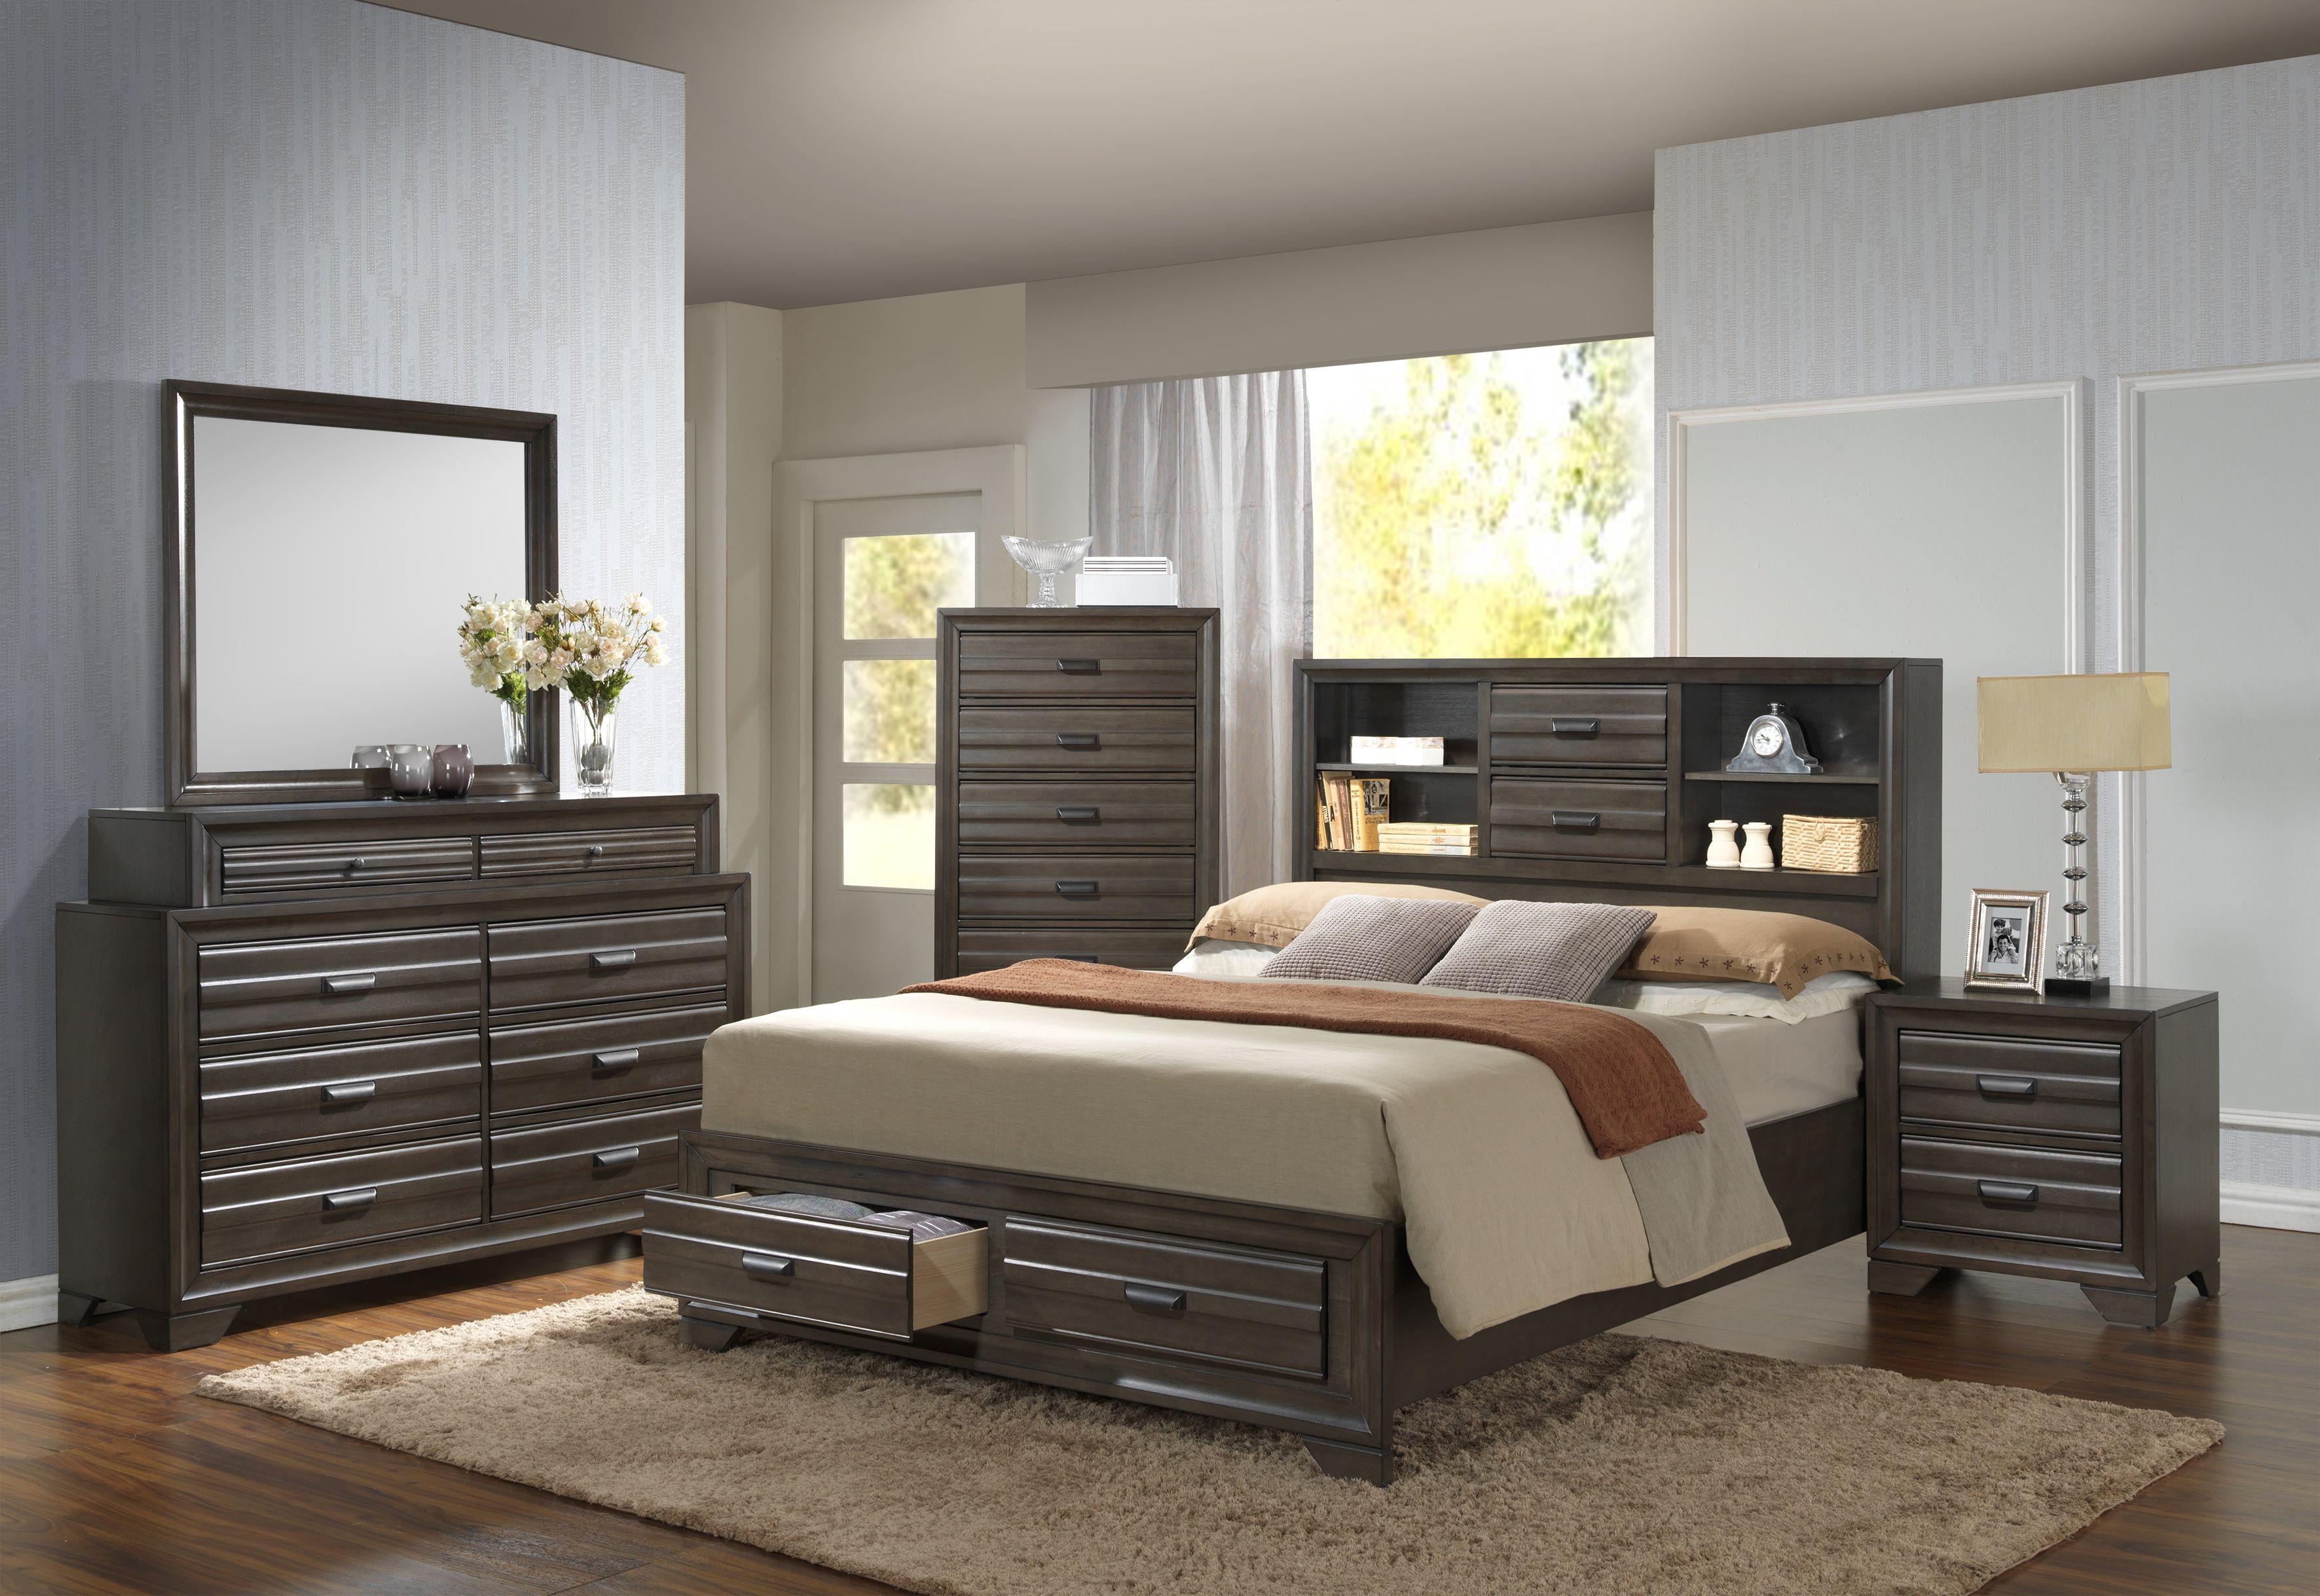 Marlo Bedroom Furniture Lifestyle 5236a Queen Storage Bed Marlo Furniture Bookcase Bed